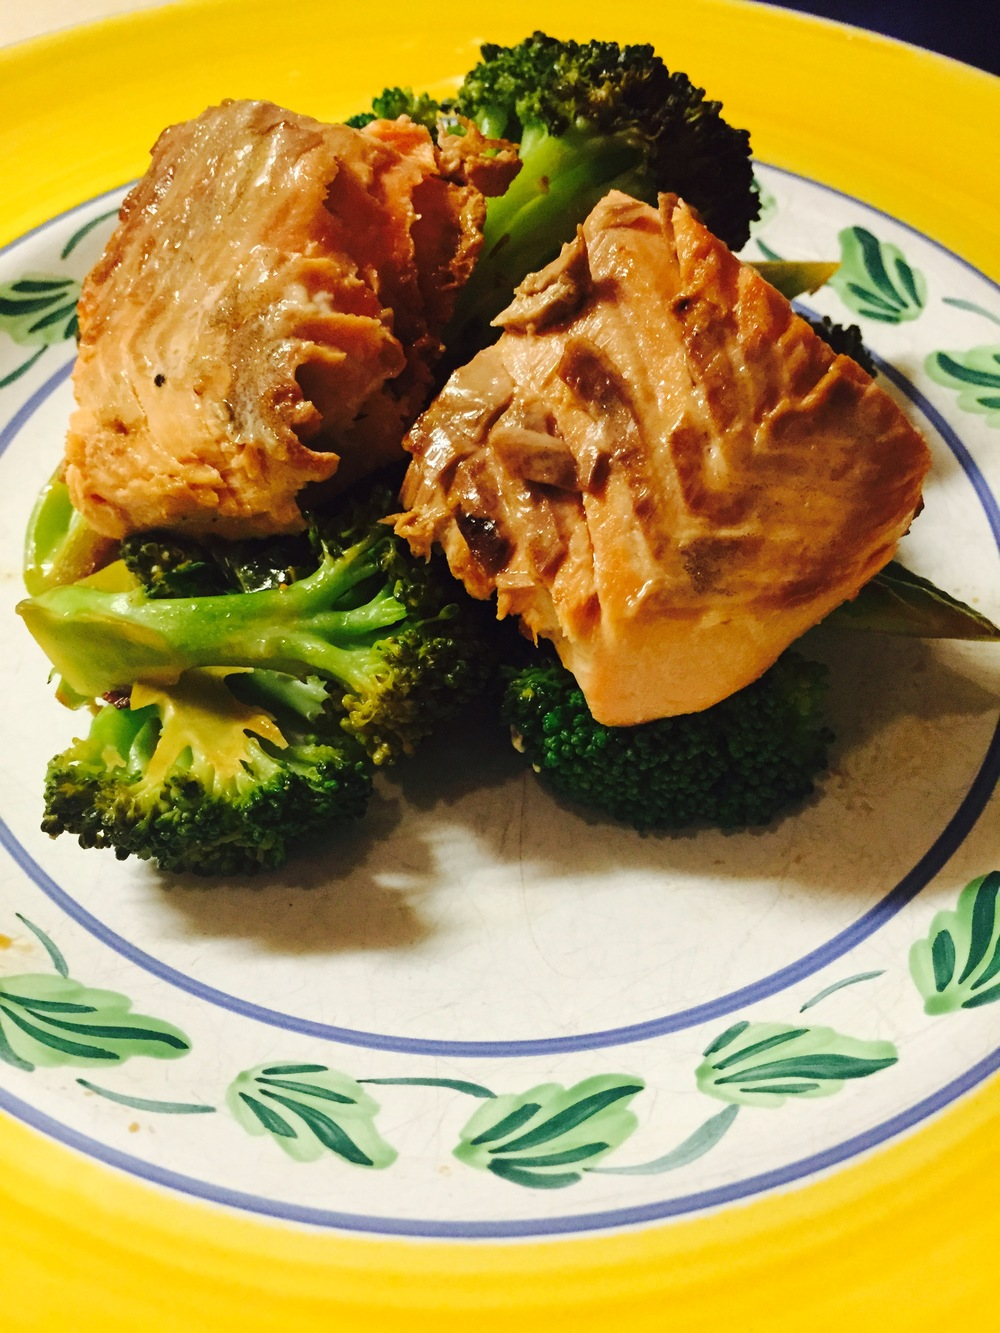 Seared salmon and broccoli